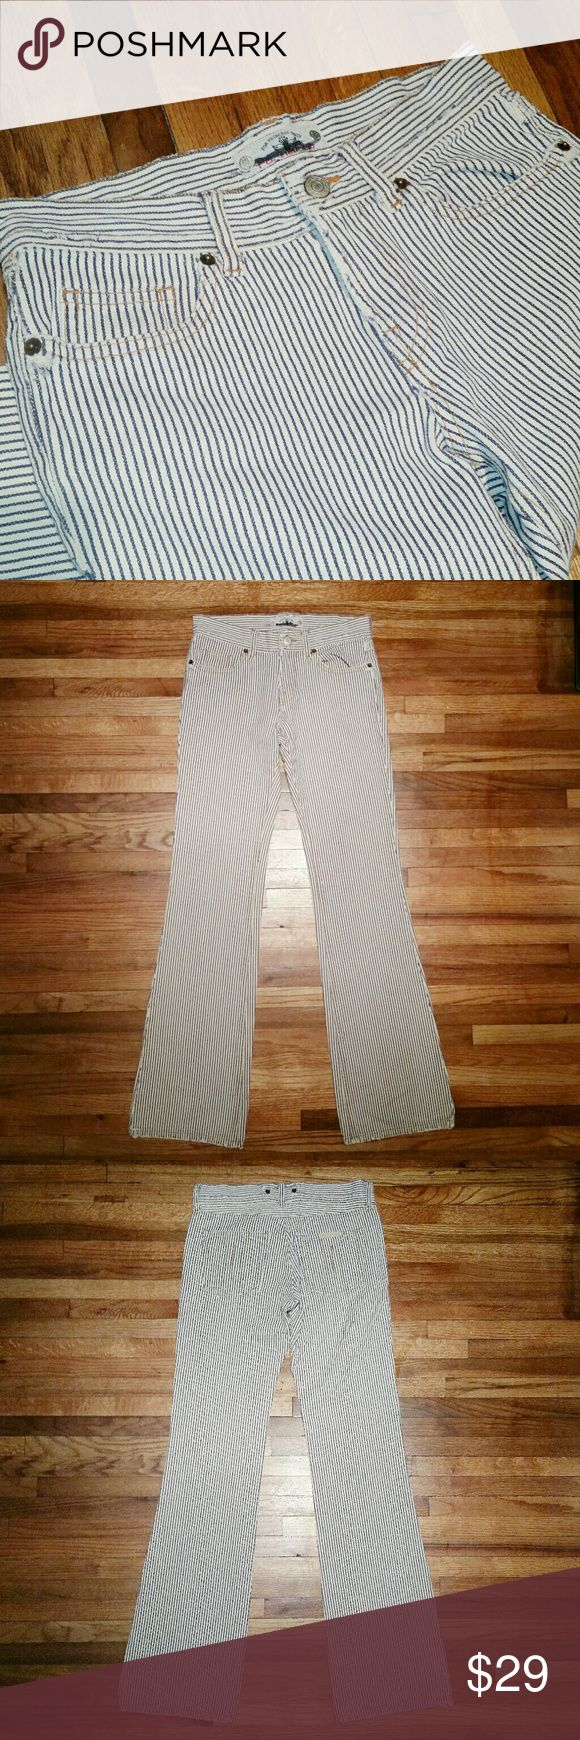 FORNARINA railroad stripe jean sz 27 Flare jean with ticking stripe.   Approx measurements taken flat: Waist 13.5 Hip 17.25 Inseam 33 Hem opening 9.0 Rise 9.0 front 11.0 back Fornarina Jeans Flare & Wide Leg